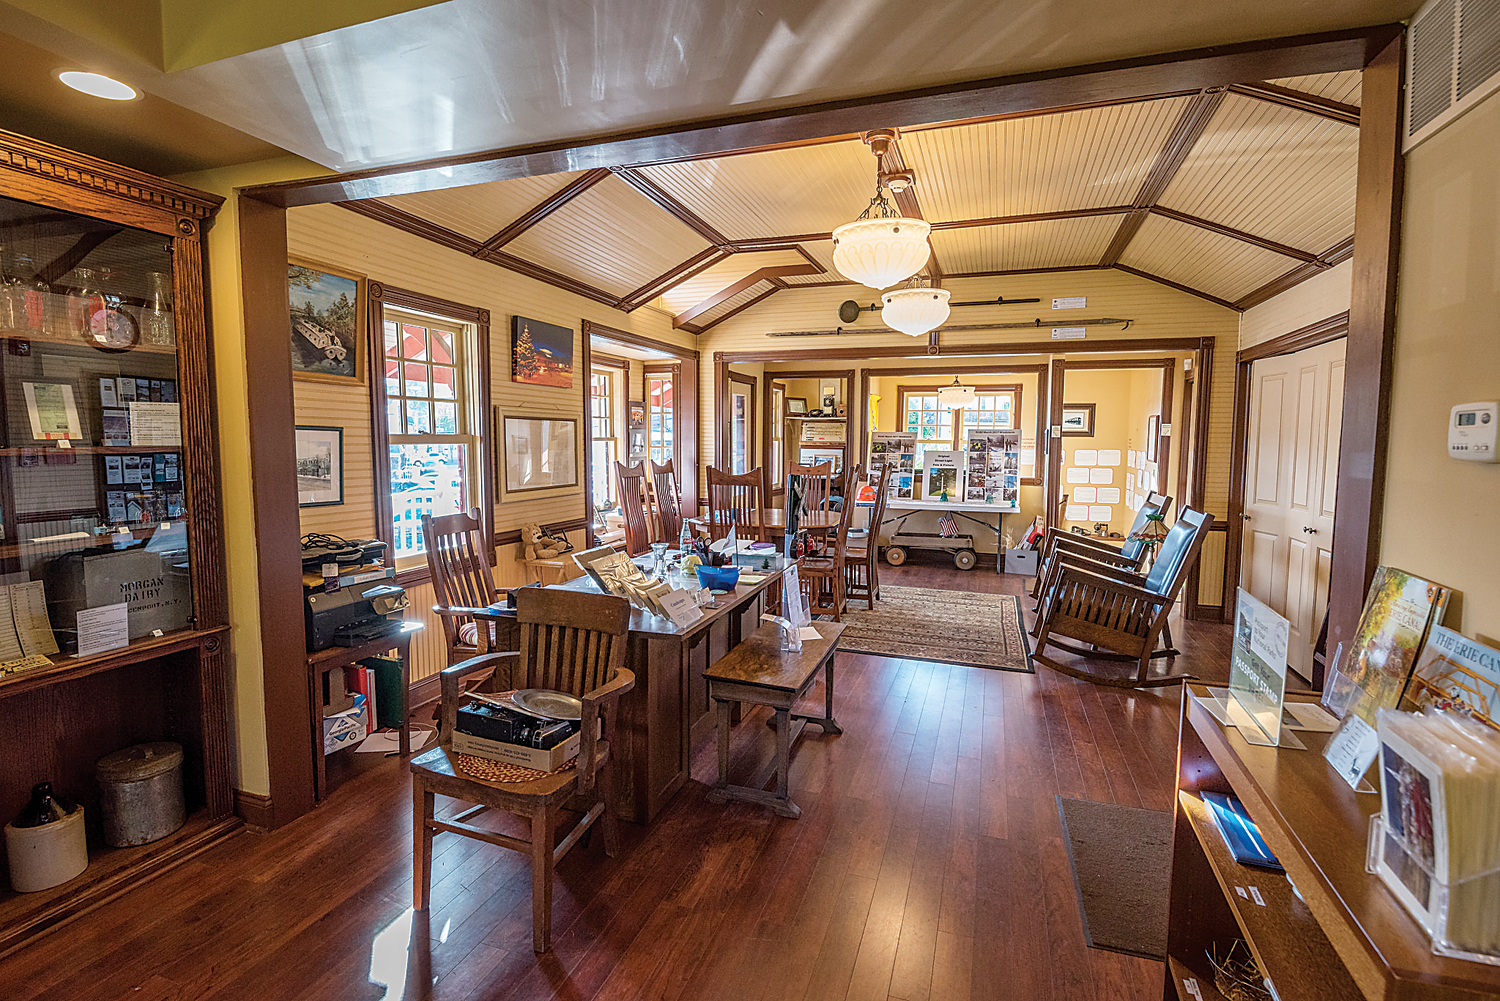 A look inside the Spencerport Depot and Canal Museum. Photo by Joe Pompili